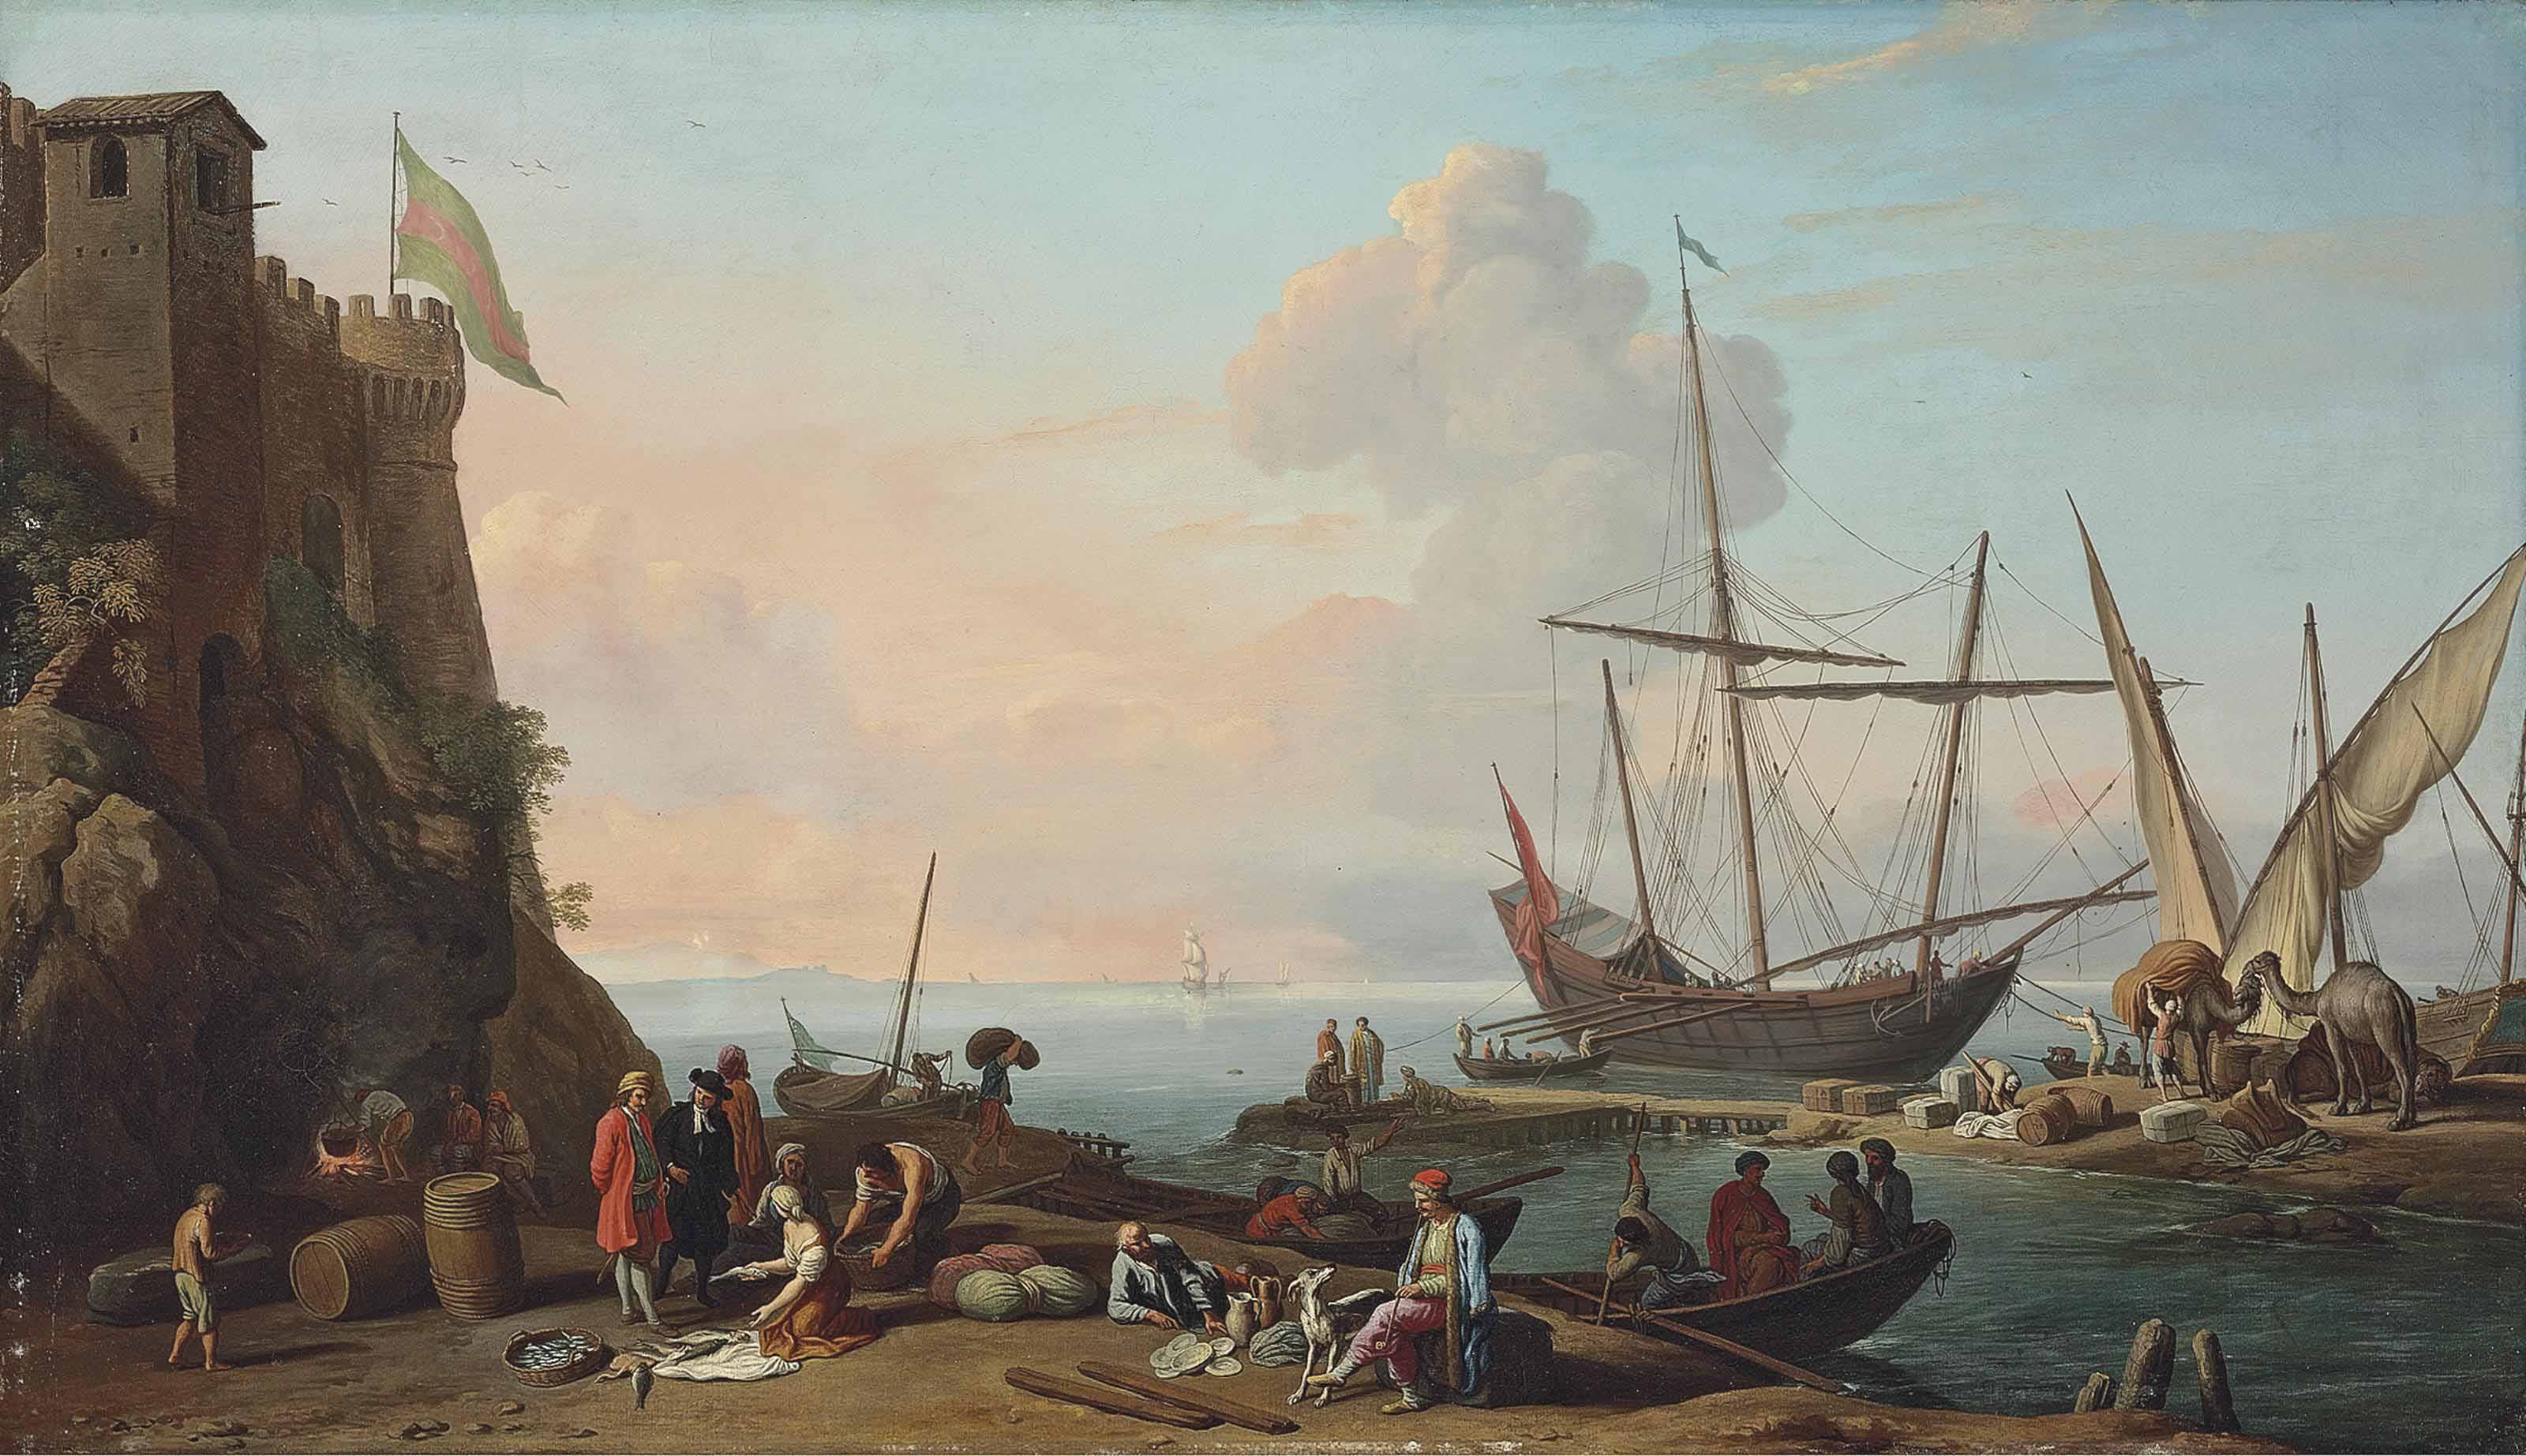 A Mediterranean harbour with stevedores unloading their ships, figures  selling fish in the foreground by a fortress